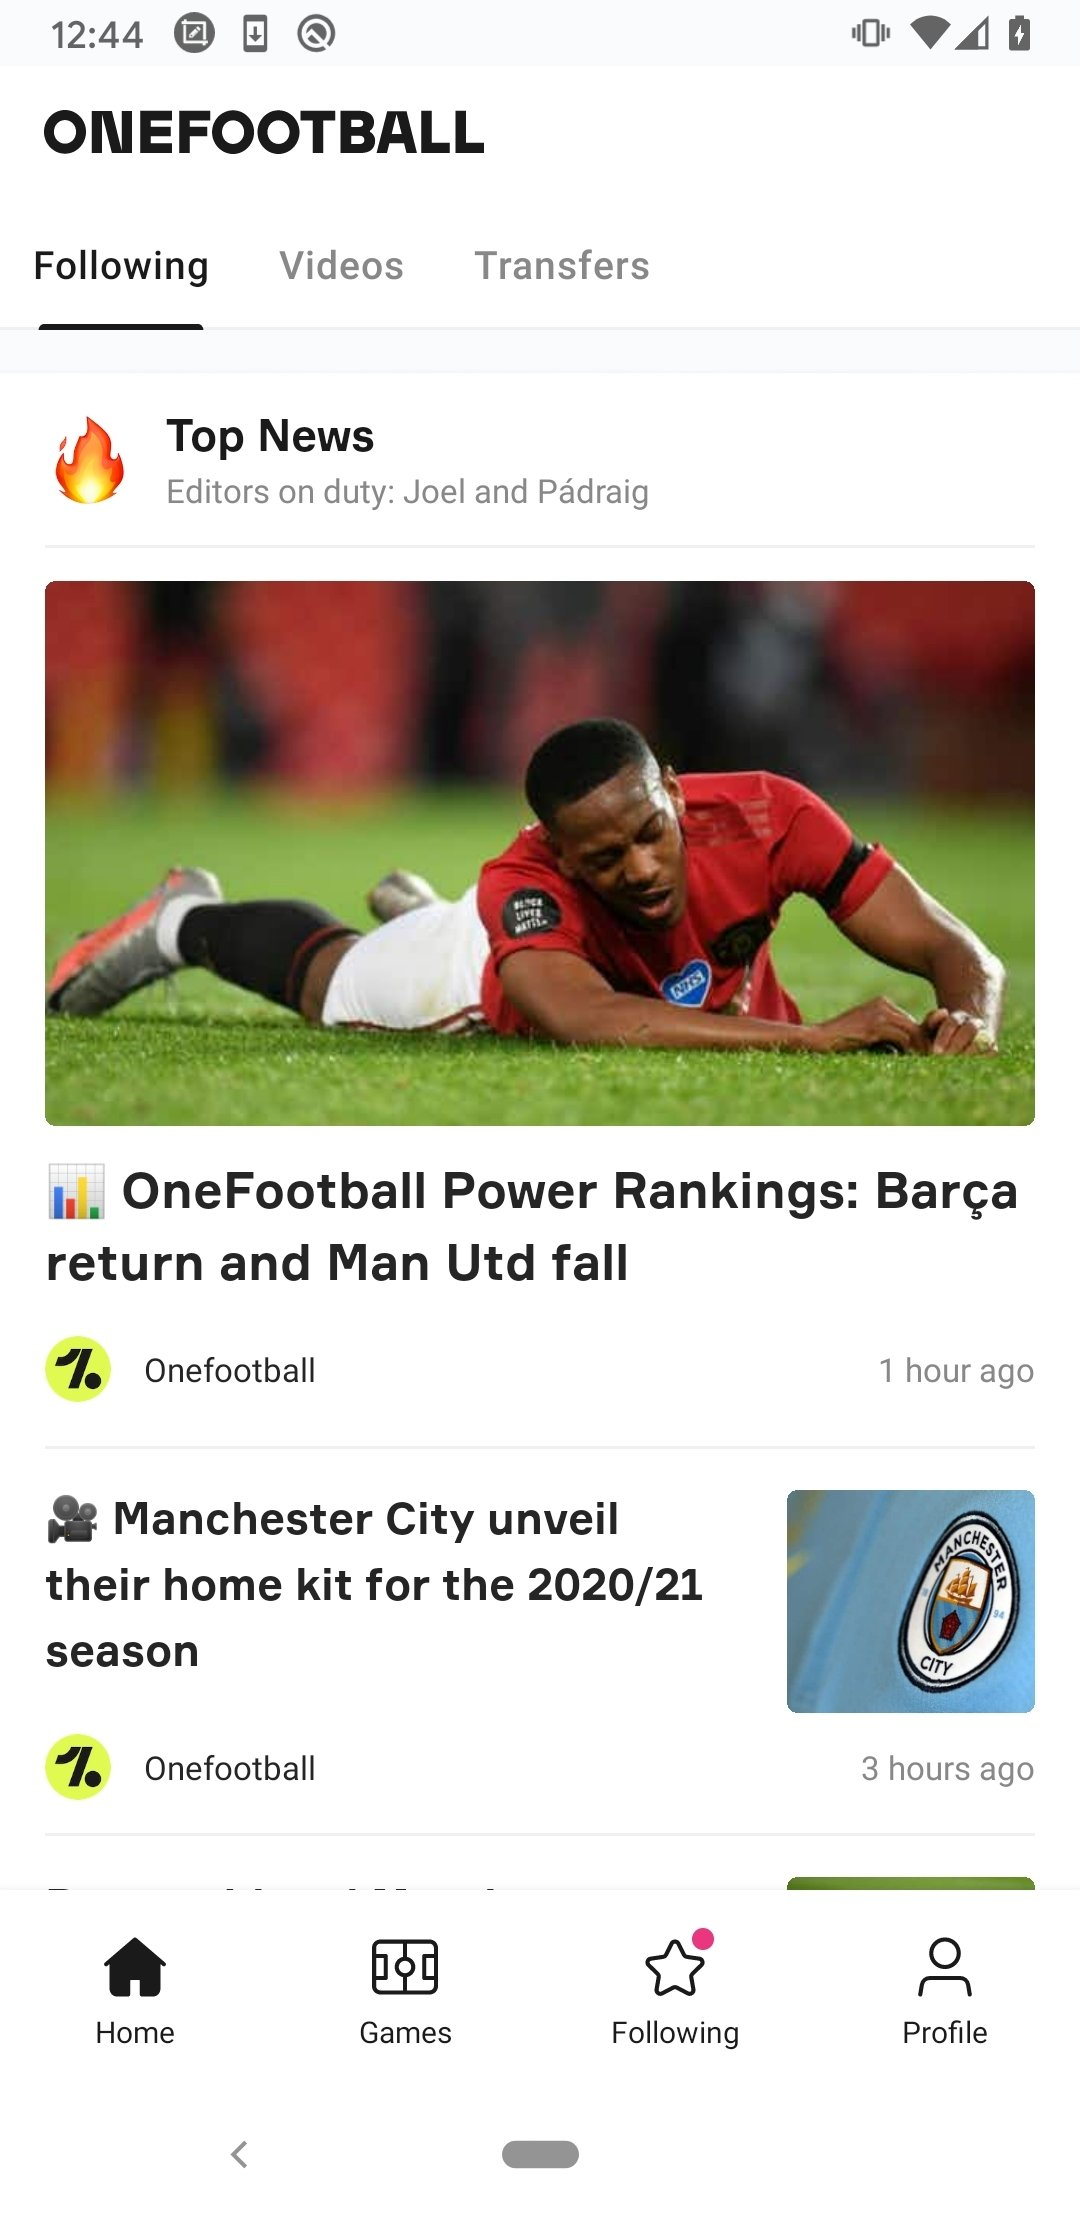 Onefootball Live Soccer Scores 11 14 0 428 - Download for